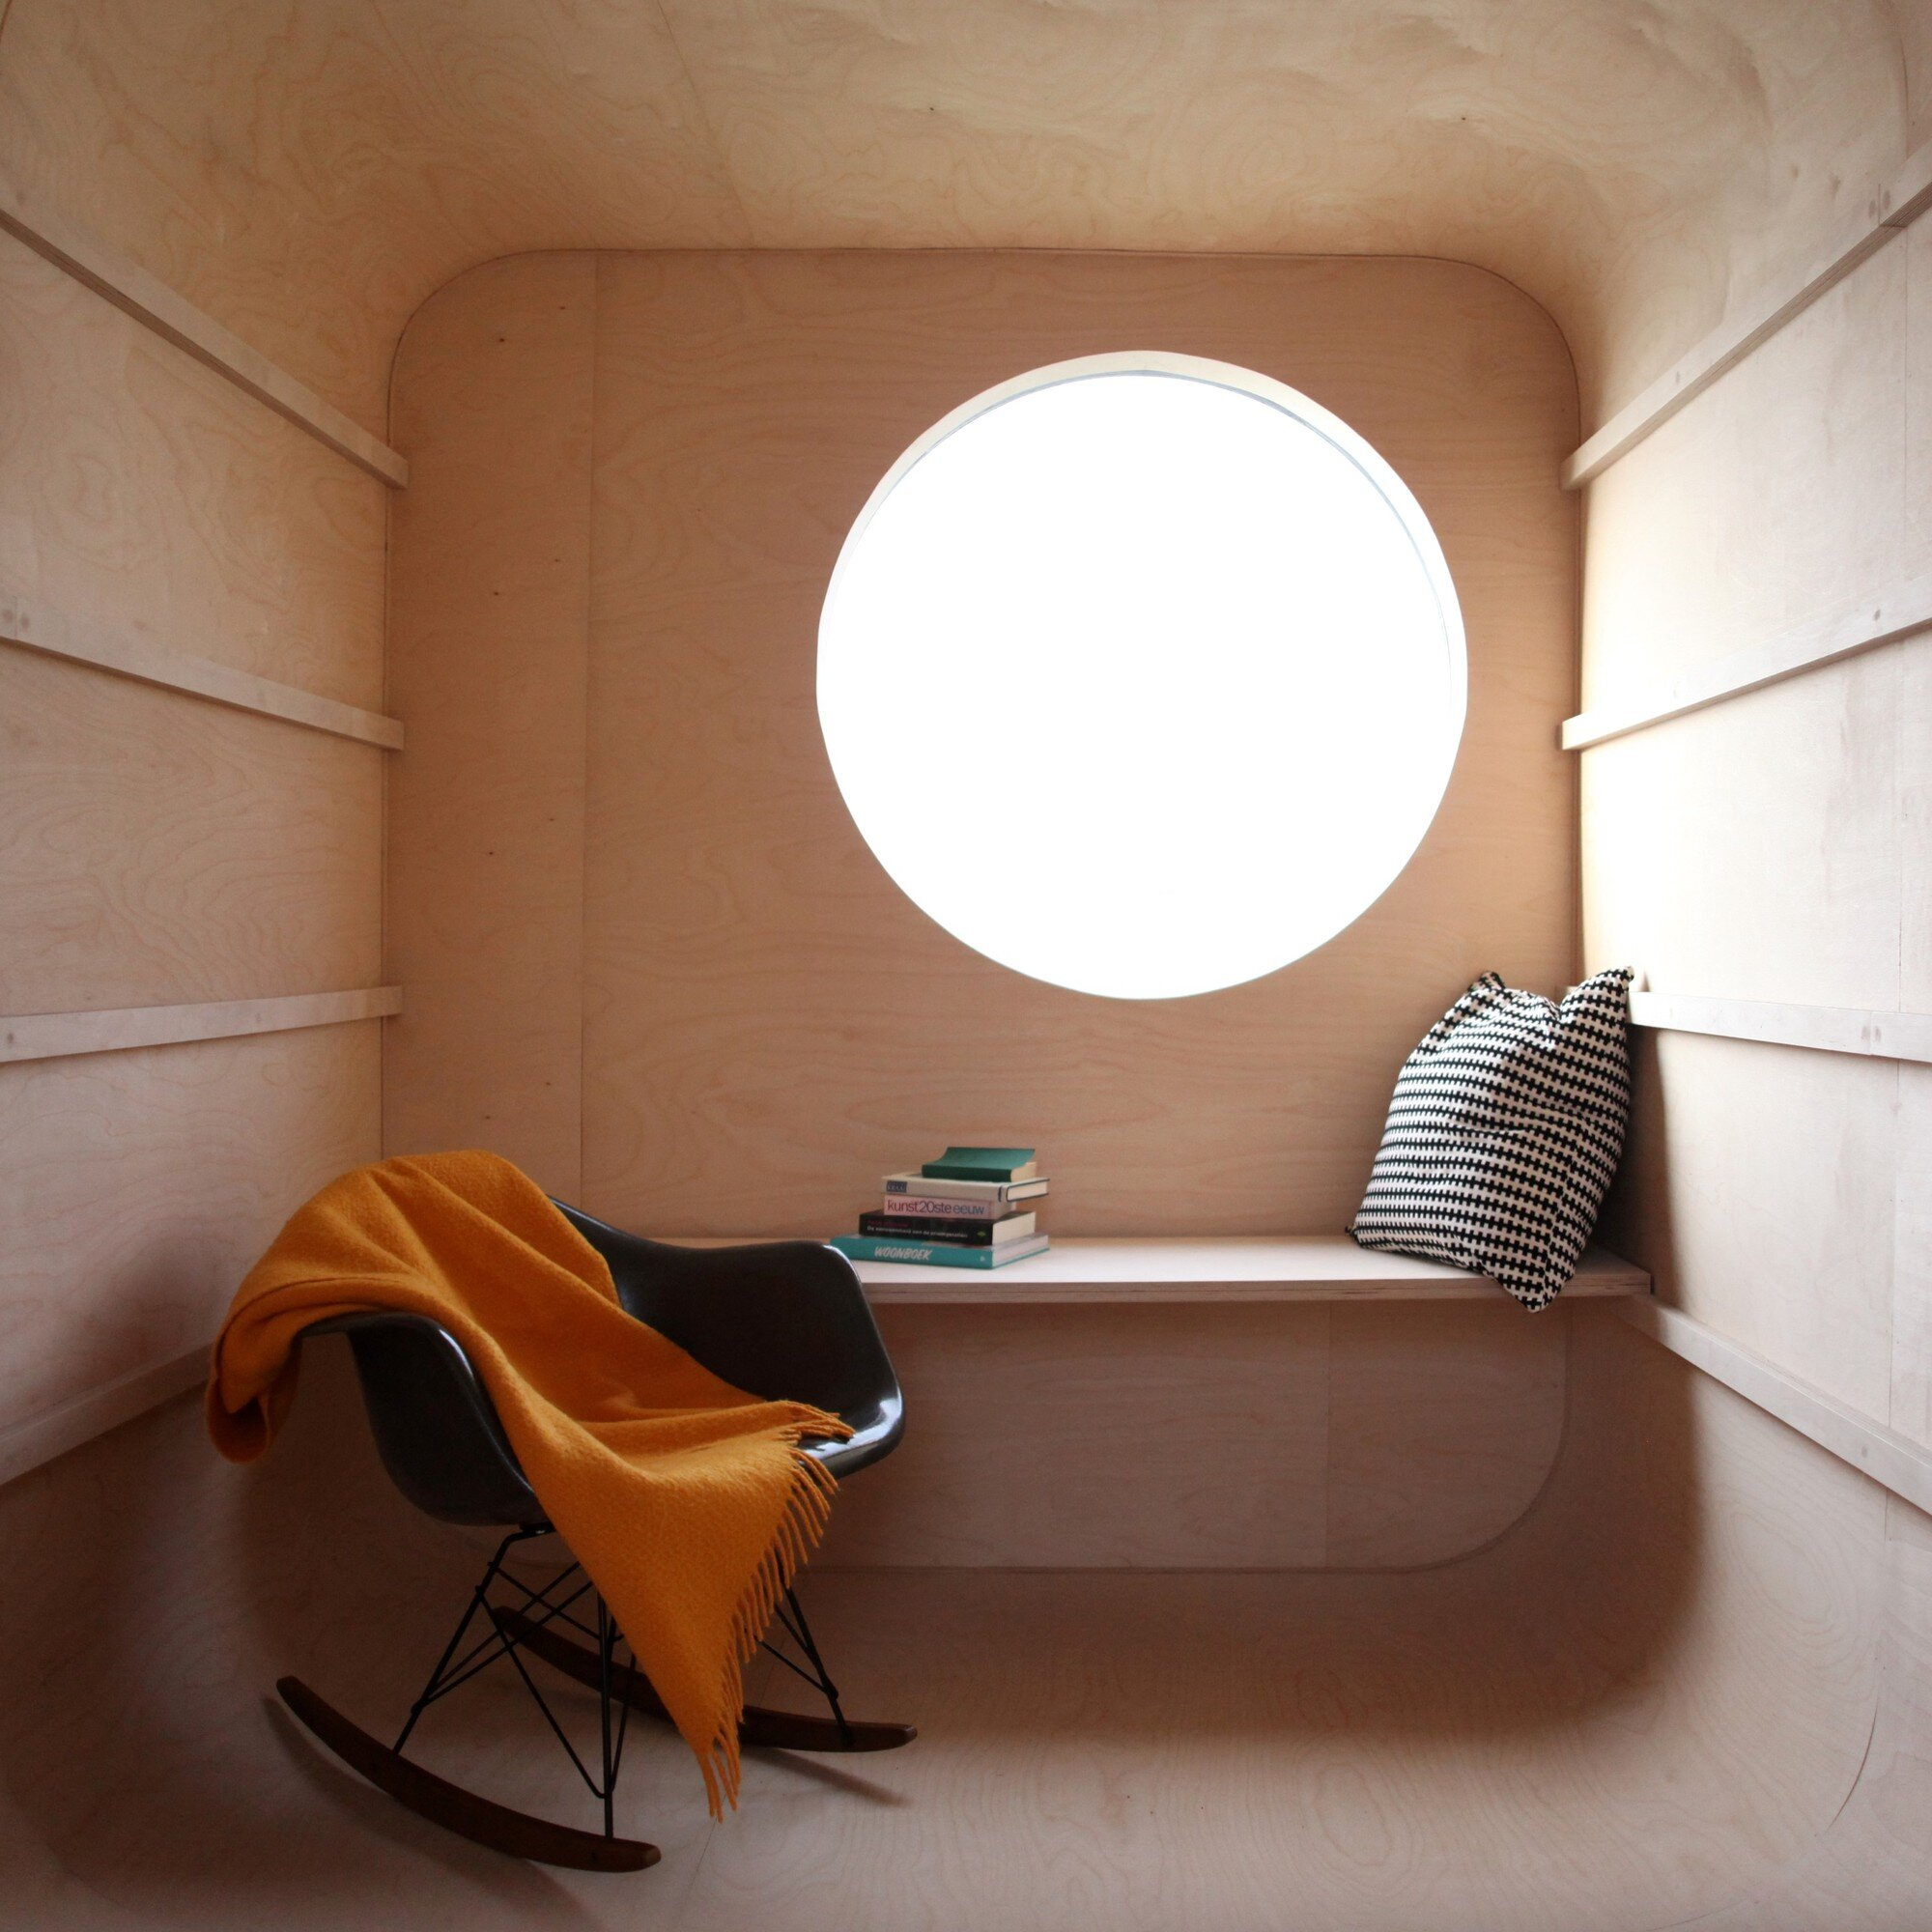 Construction Trailer Conversion - Karel Verstraet - Tiny Space - Interior Desk - Humble Homes